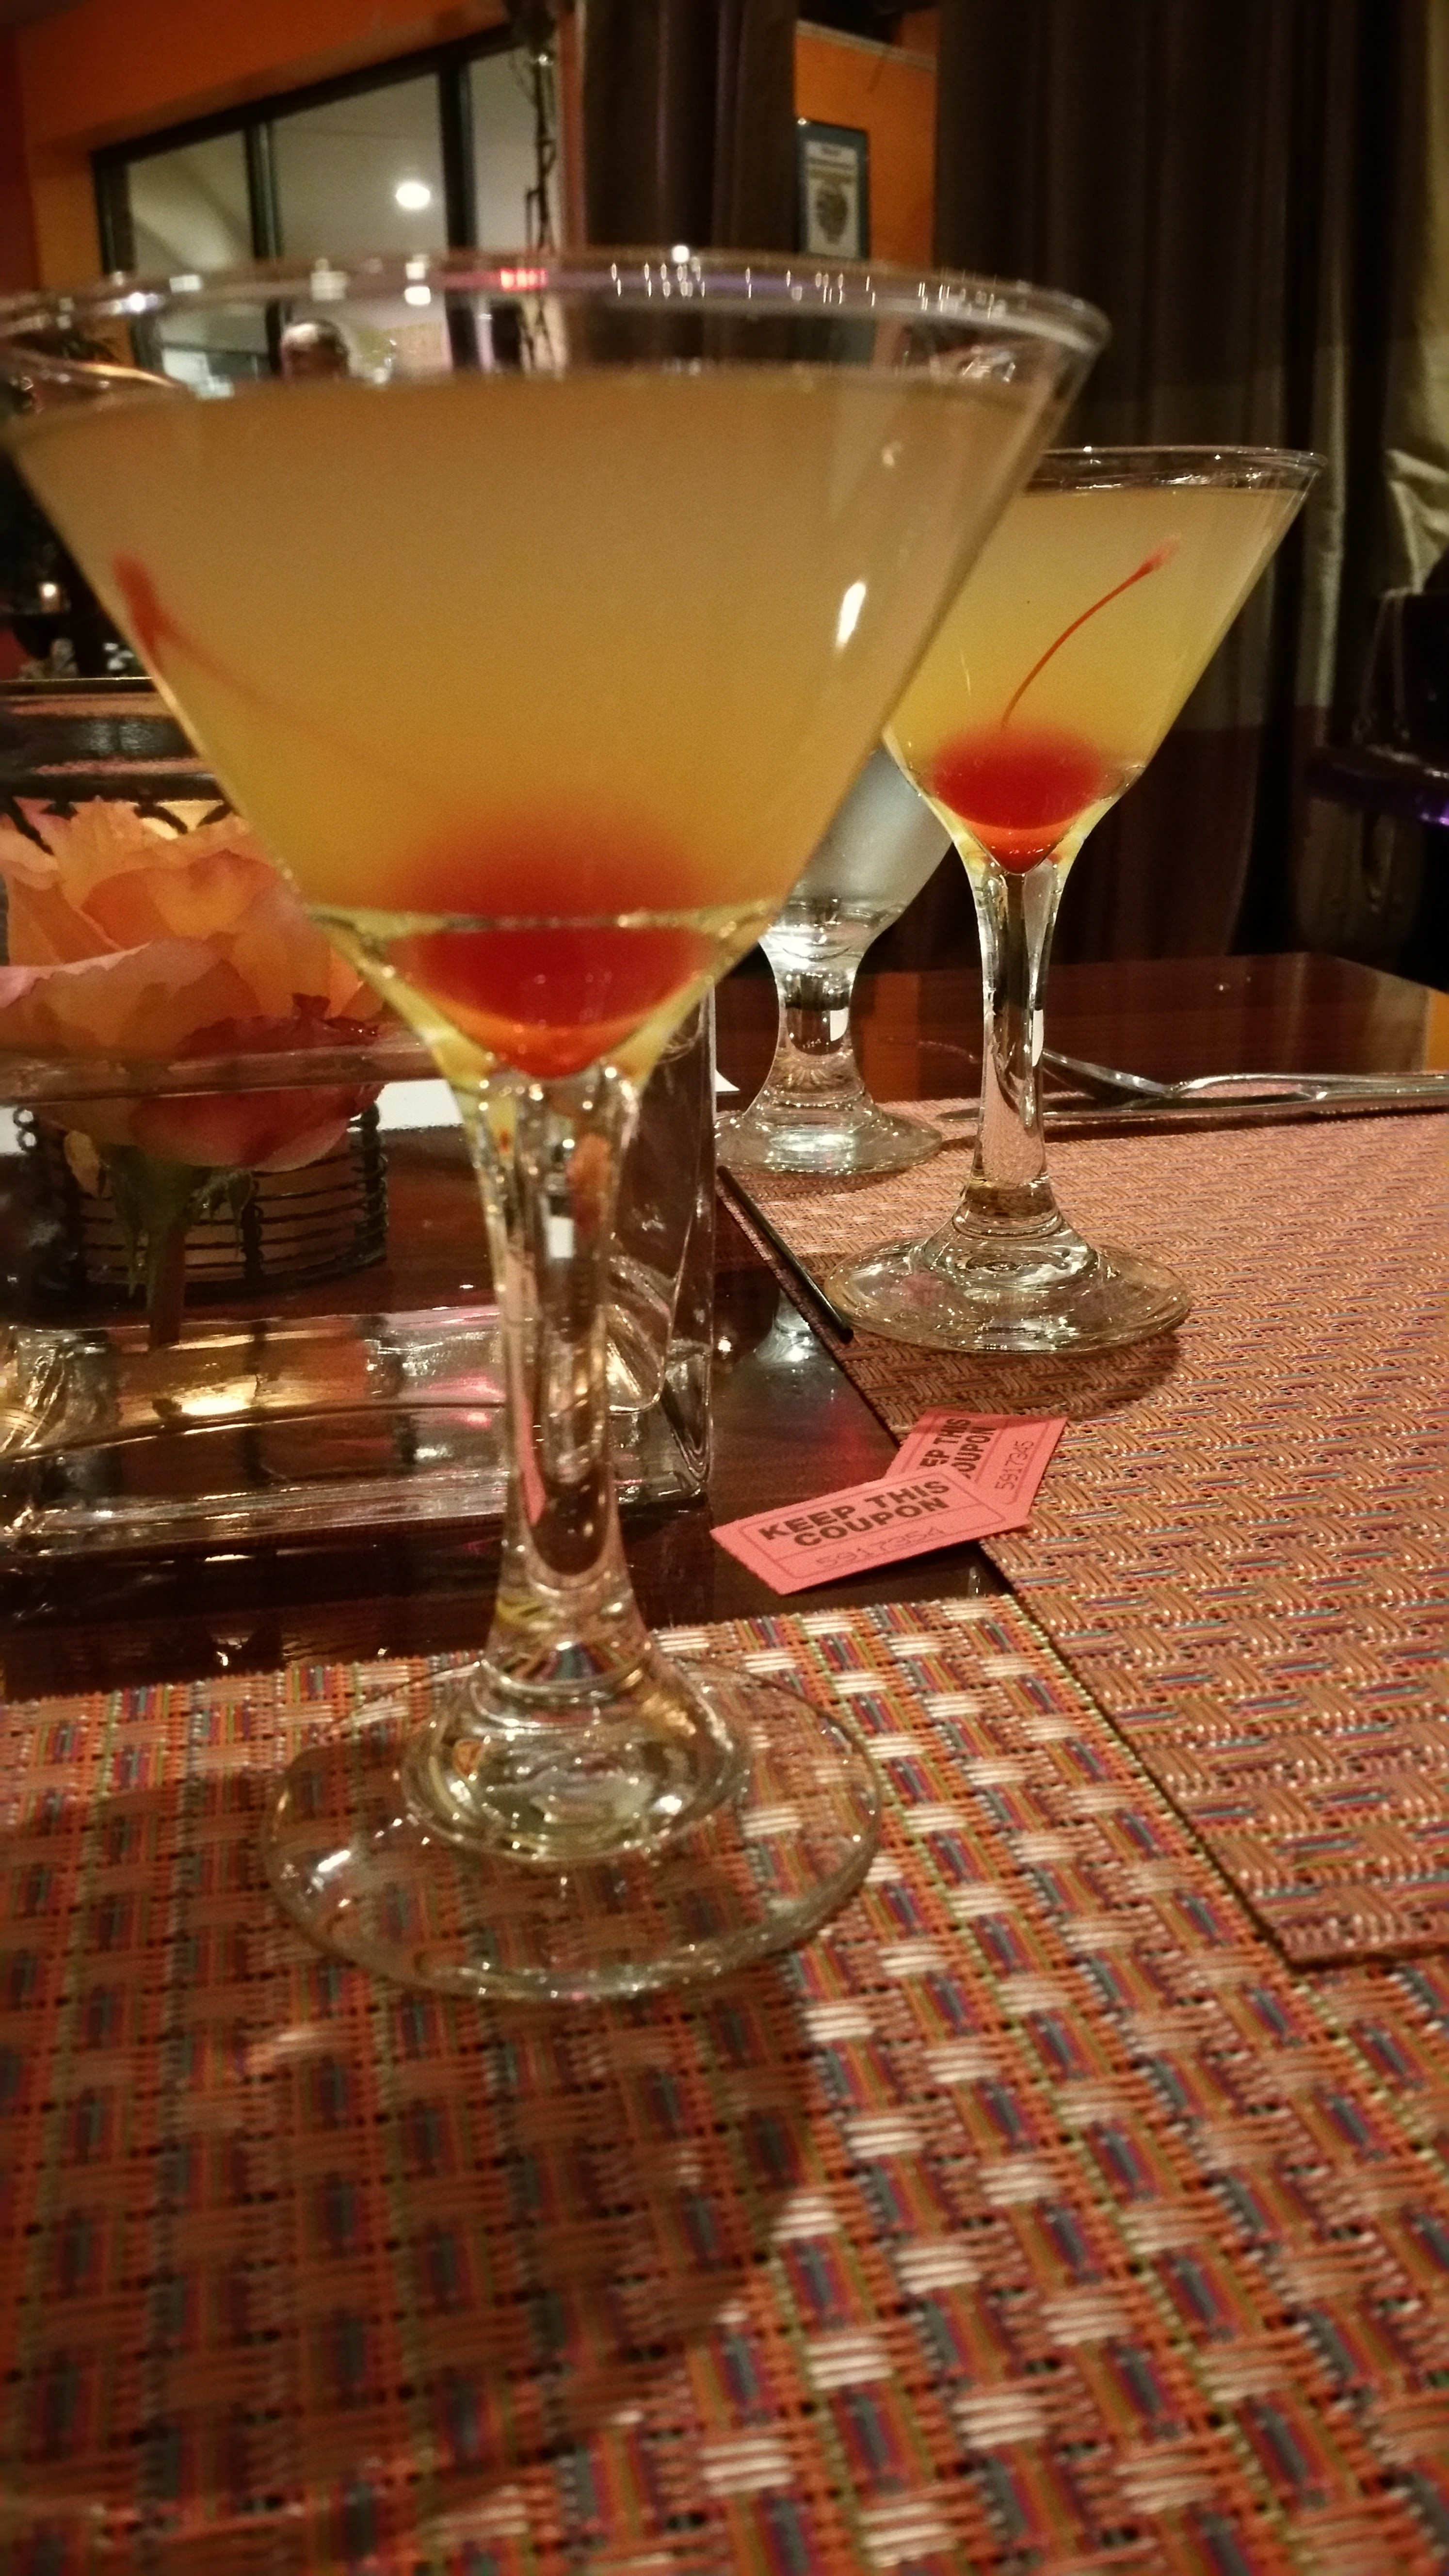 Italian OWL margarita three vines bistro